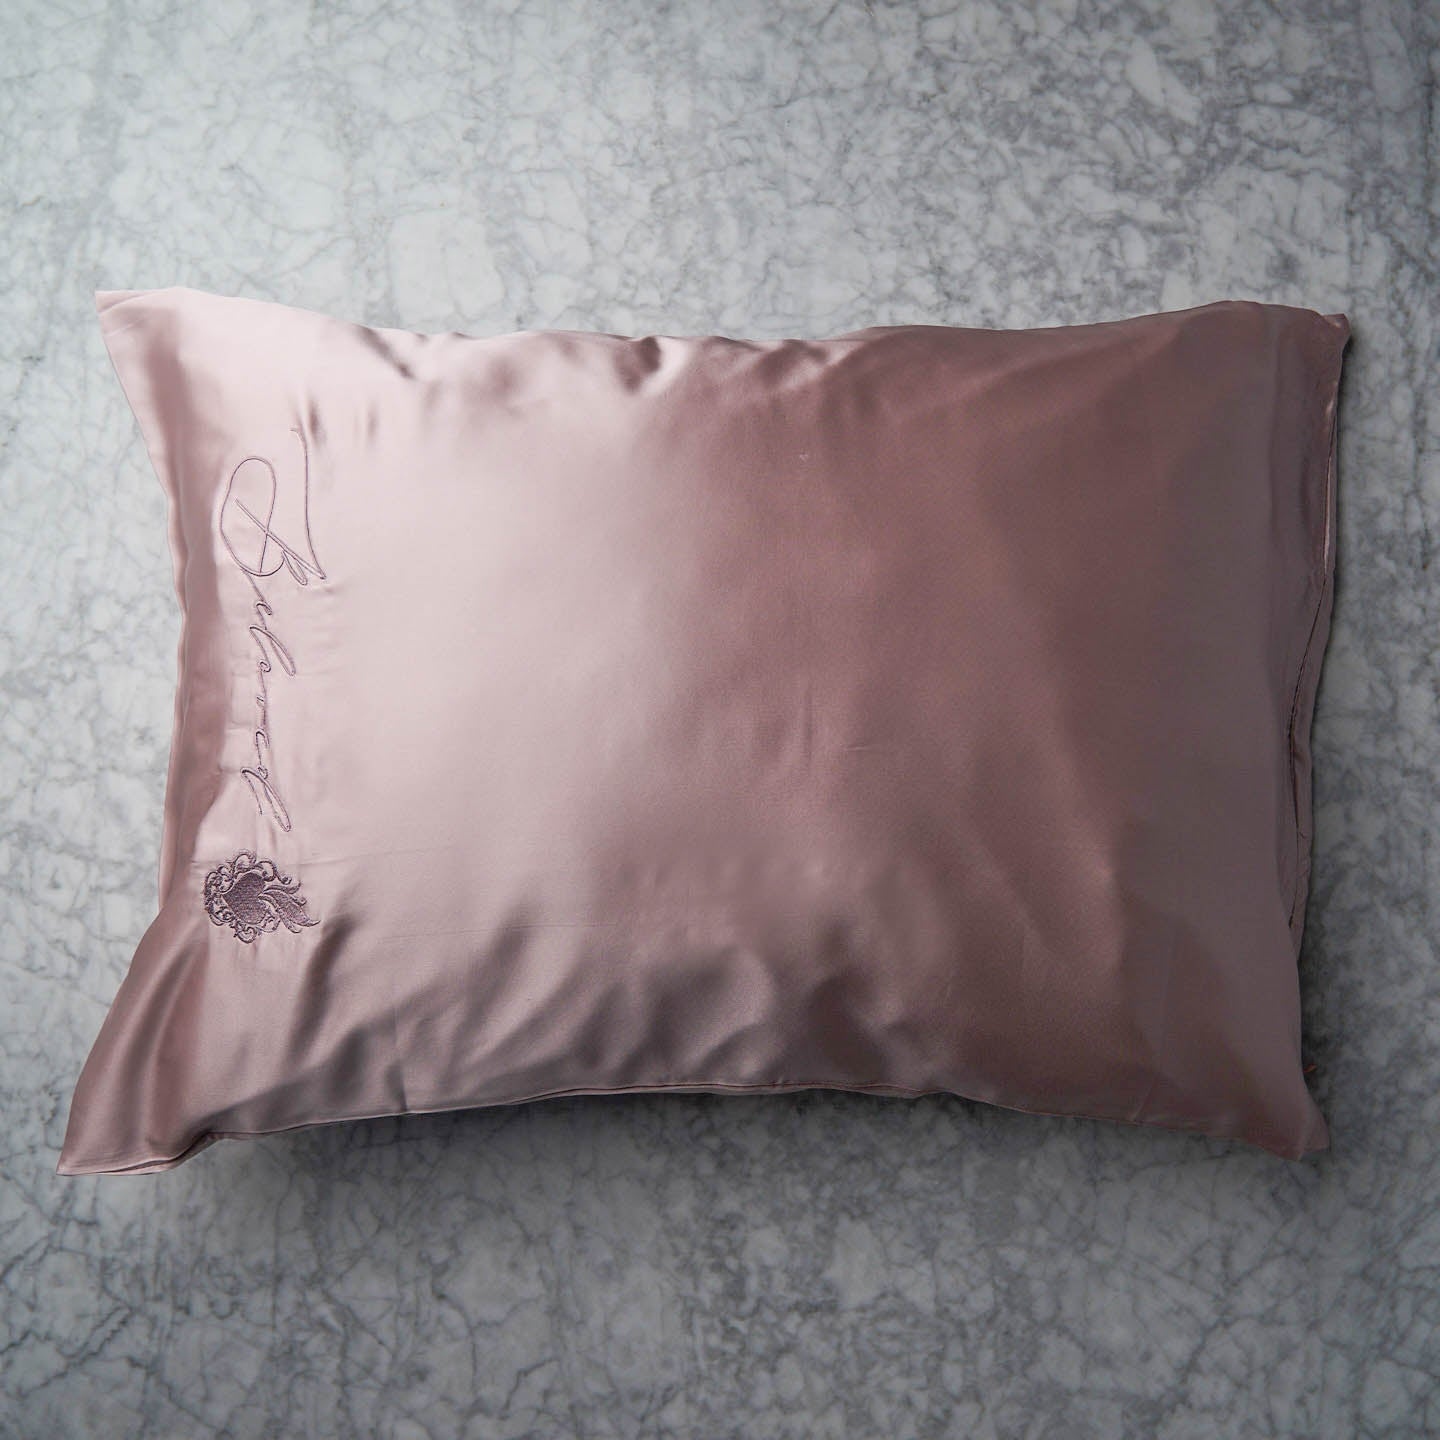 Beloved Mulberry Silk Pillowcase - Mauve